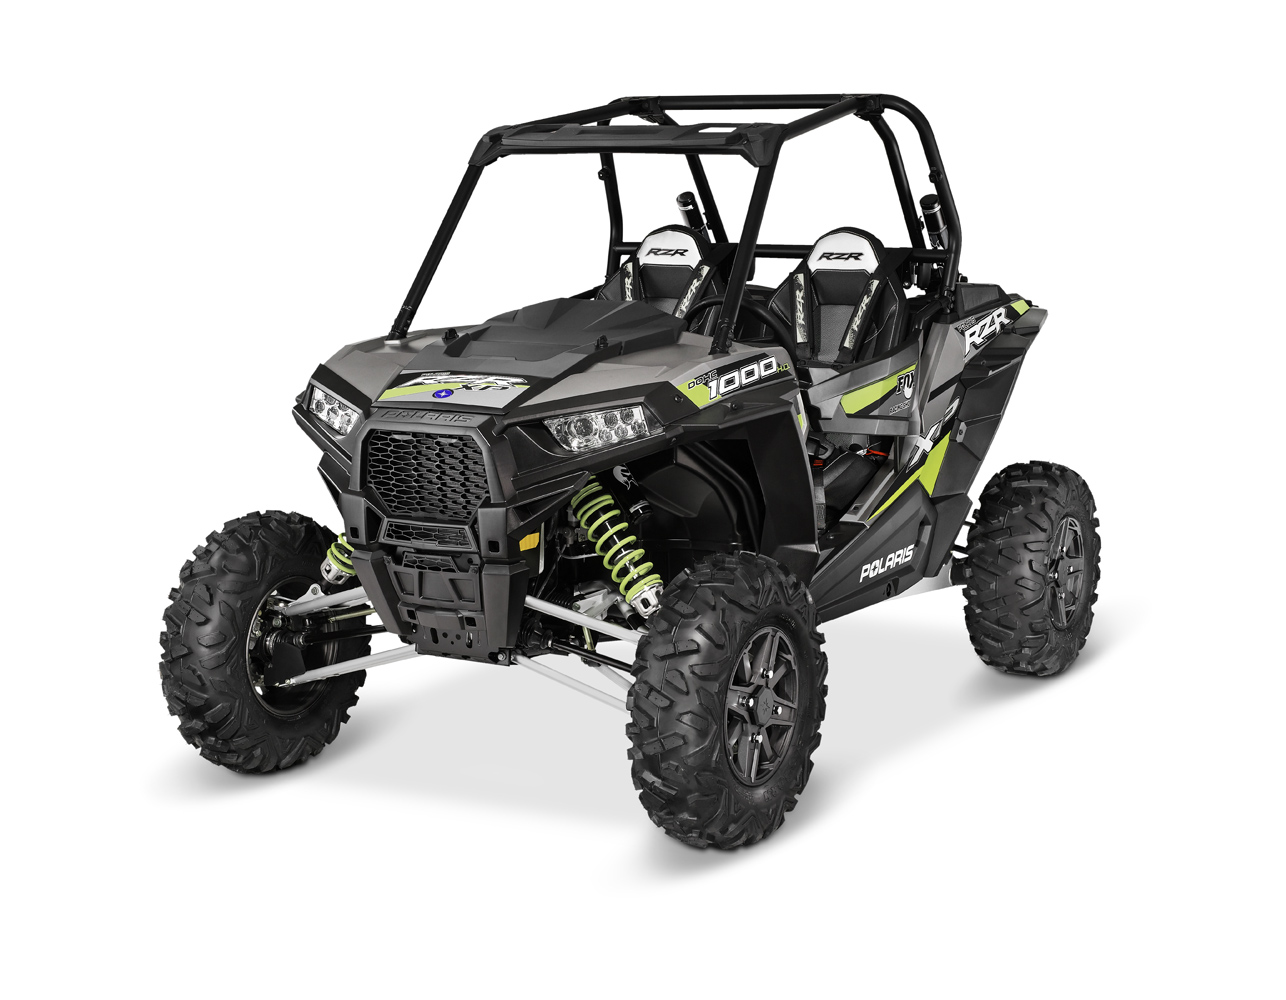 polaris announces new rzr xp 1000 fox turbo matte silver edition and new rzrs in limited edition. Black Bedroom Furniture Sets. Home Design Ideas